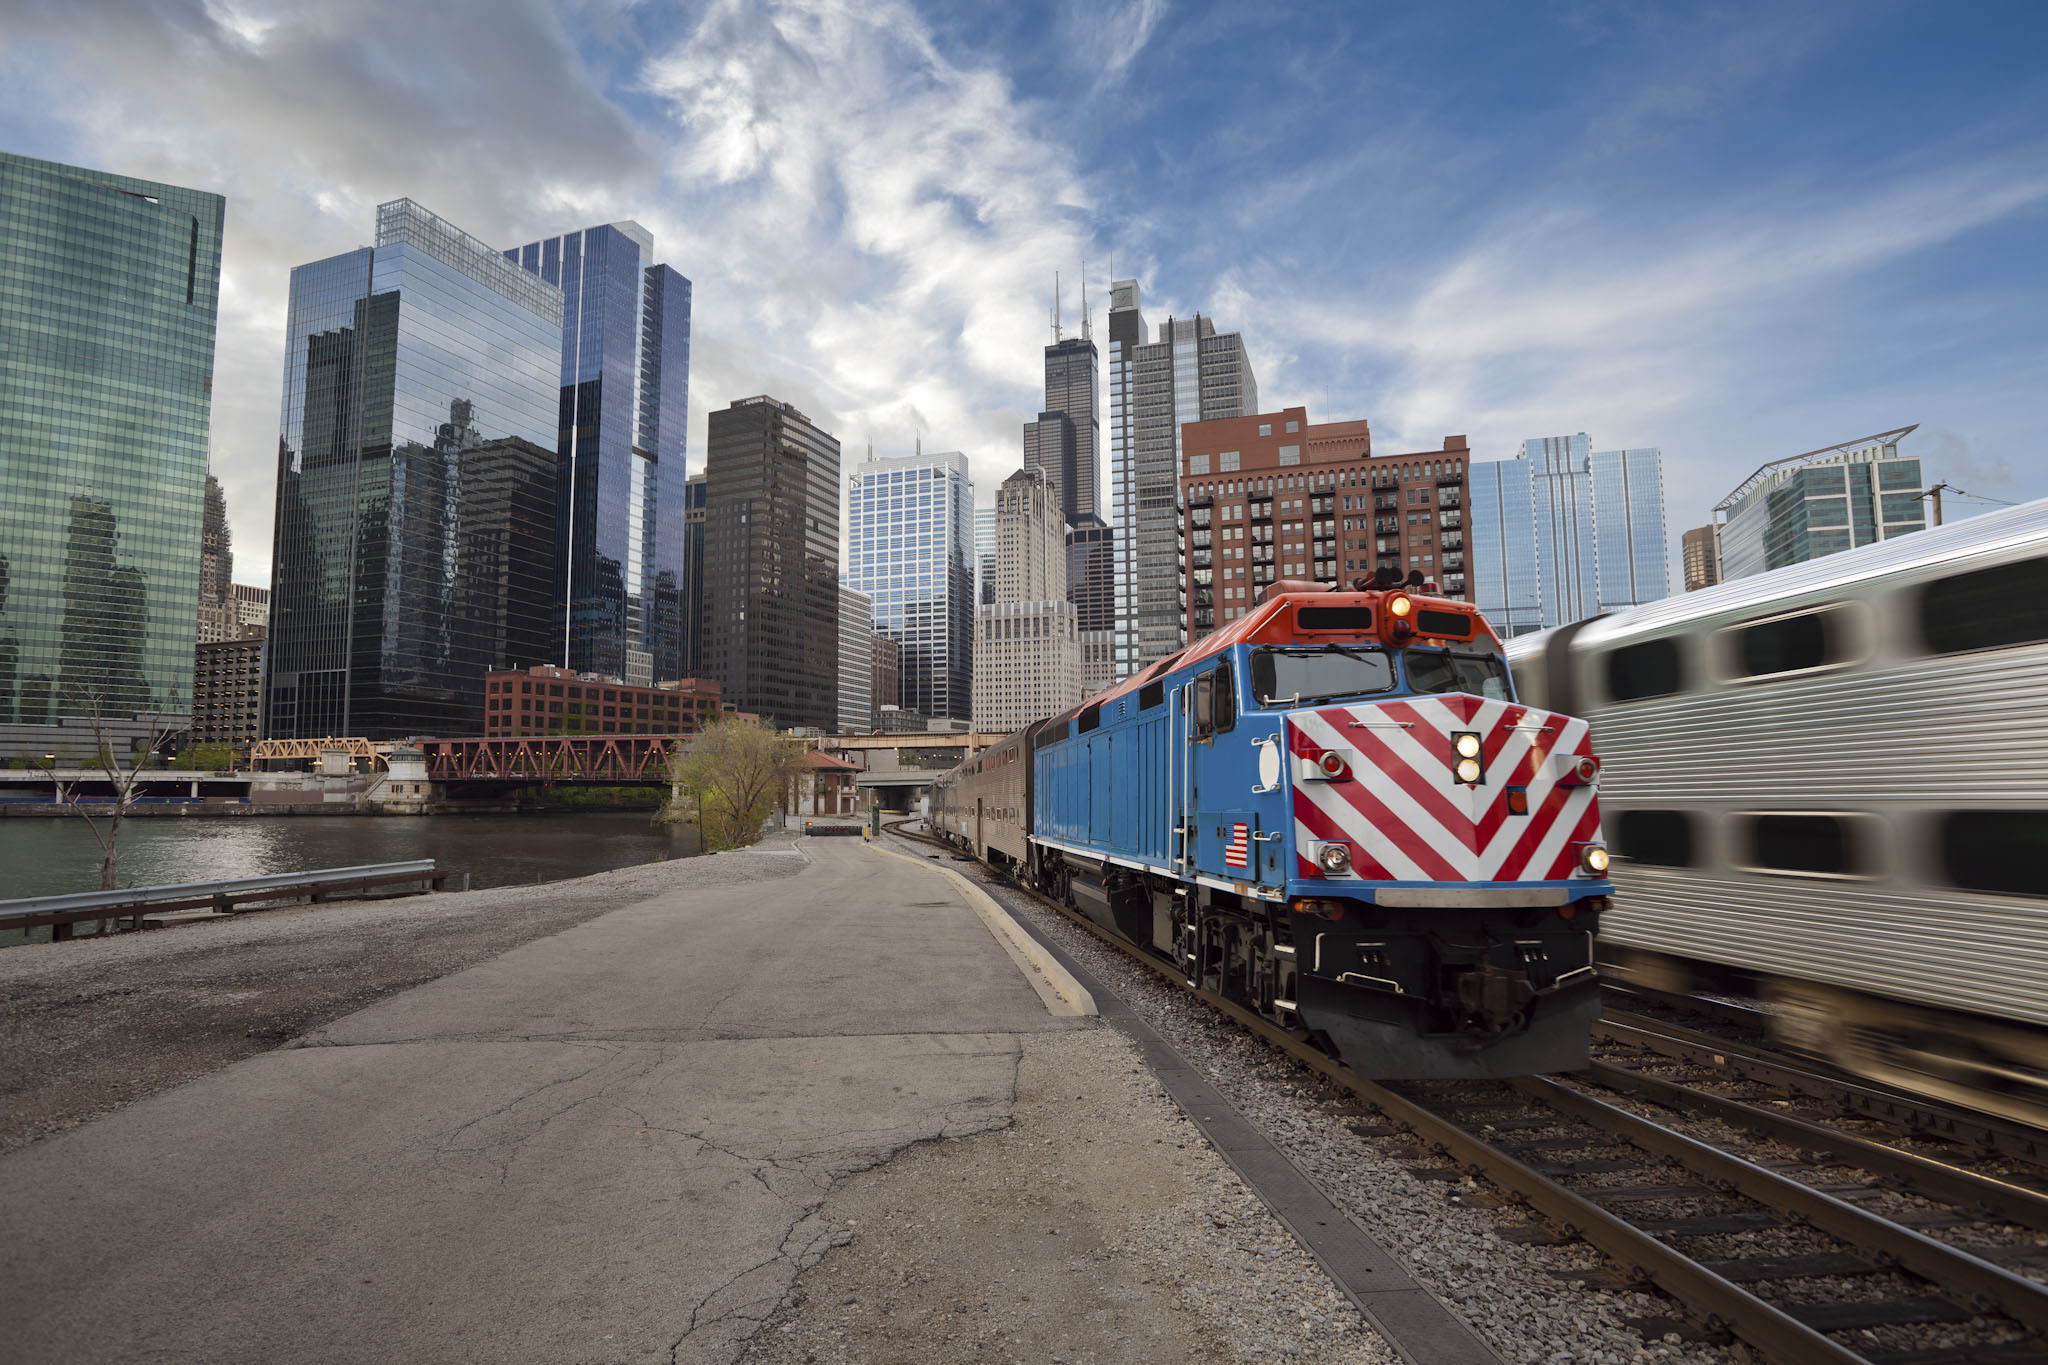 Metra is upgrading 302 railcars with a bunch of new features